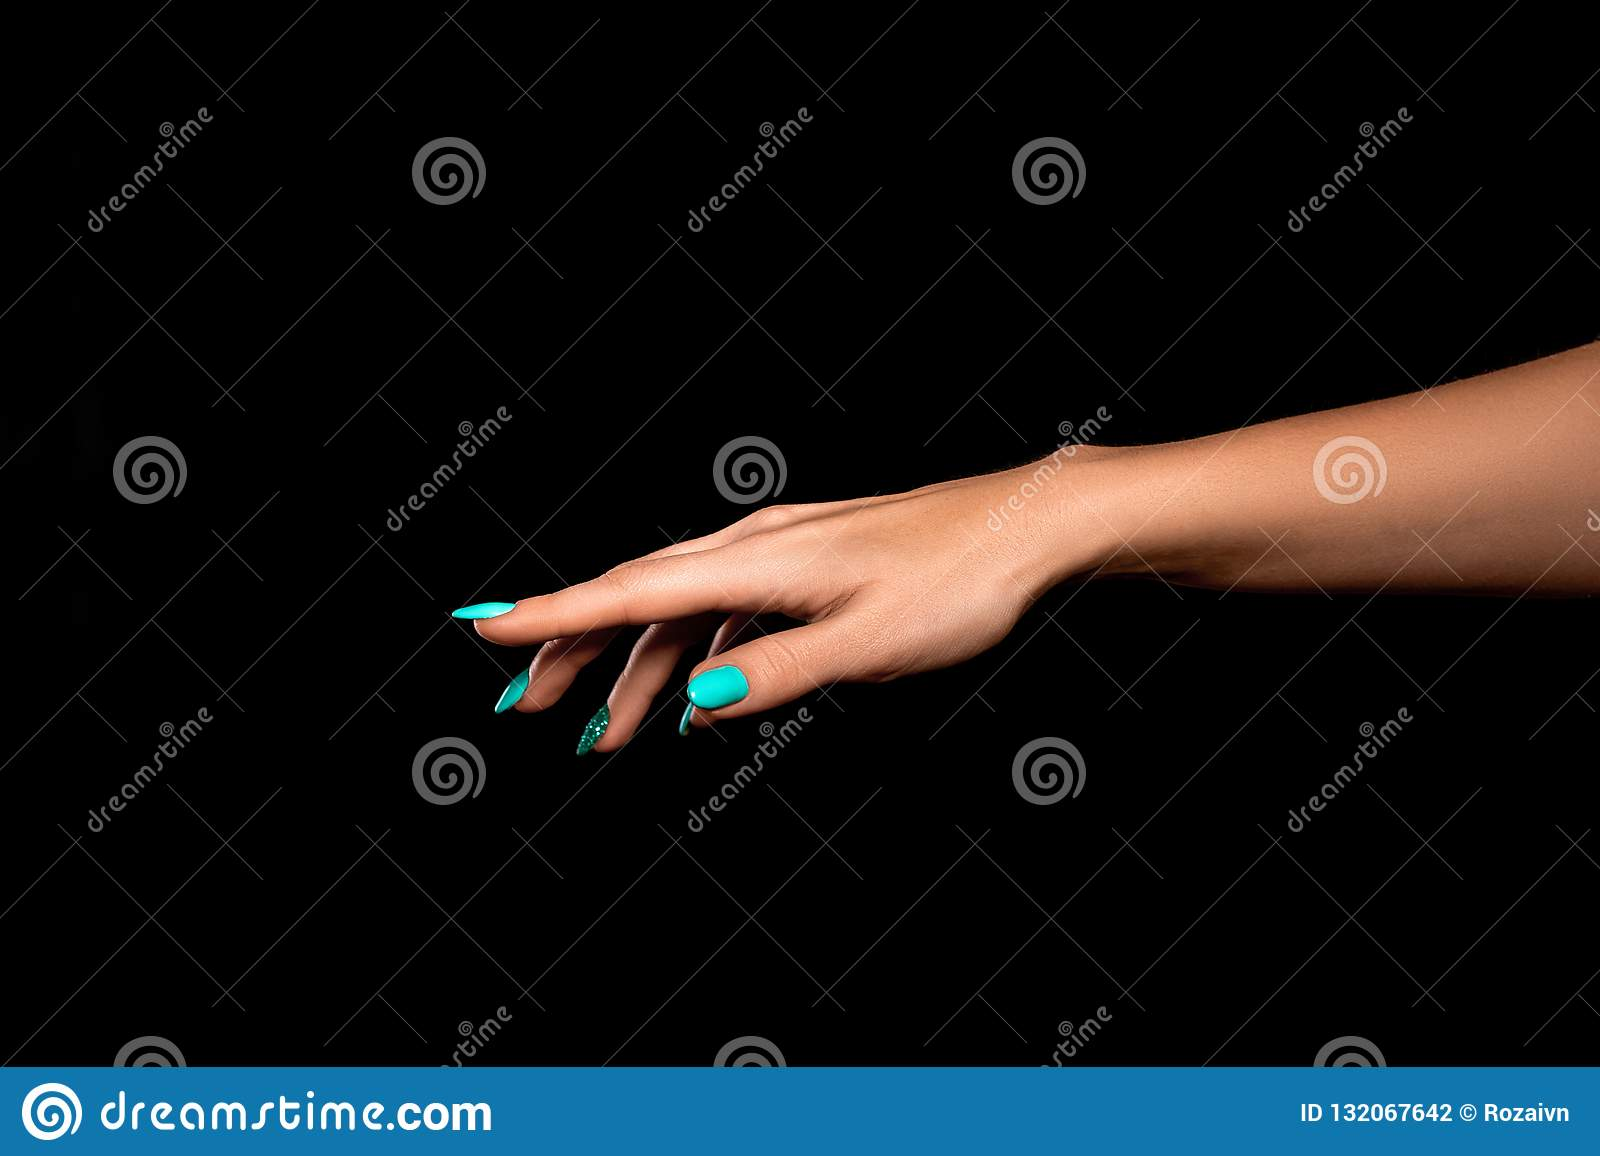 Studio shot of an unidentified woman`s hand showing a gesture of